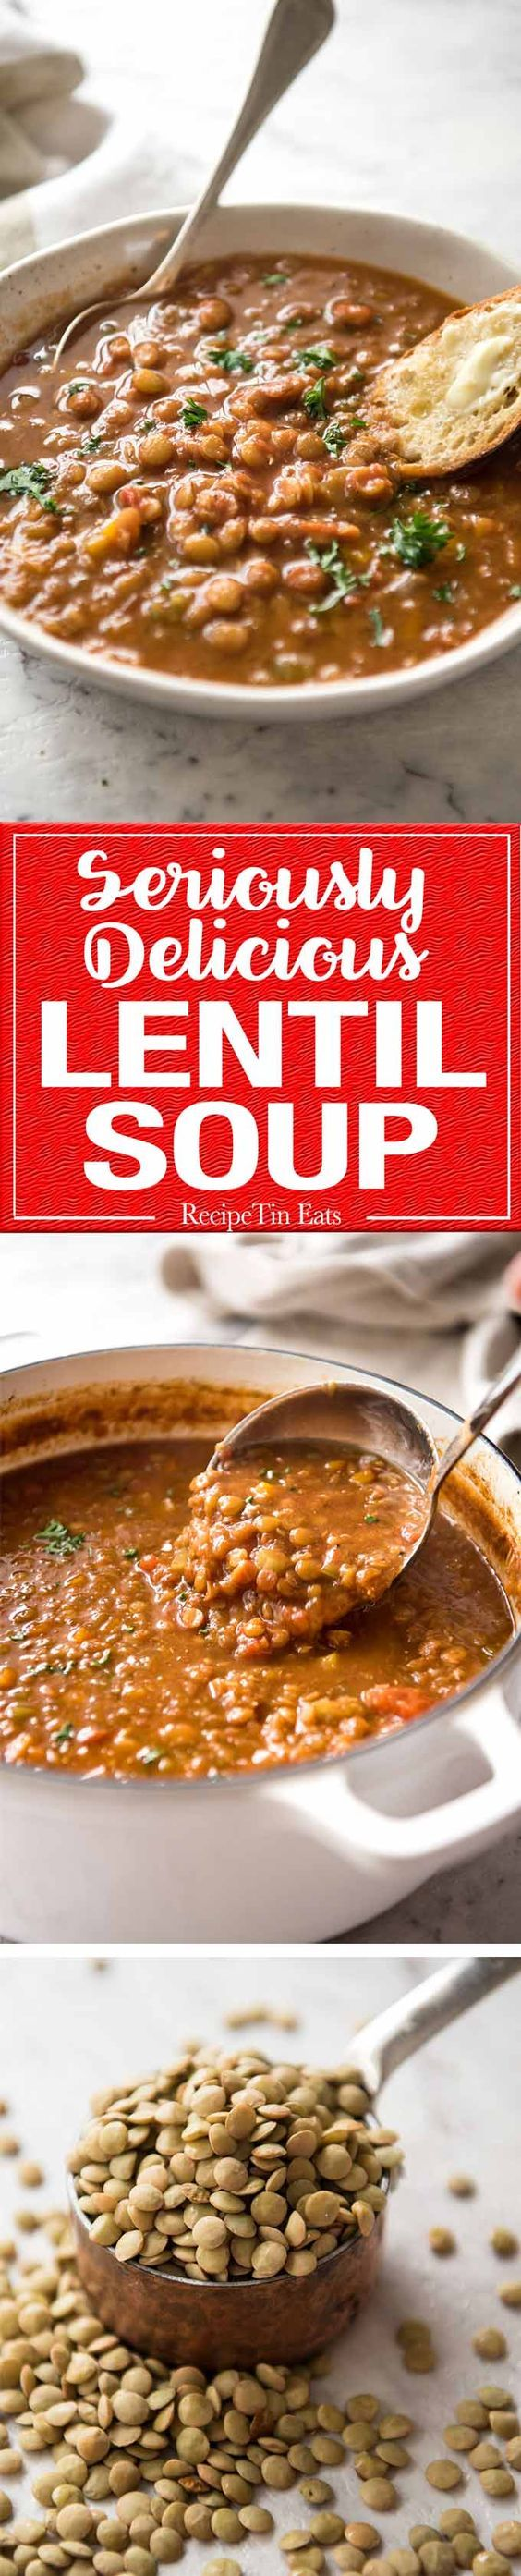 Don't settle for a bland Lentil Soup. Make it right and you'll have everyone begging for more! All it takes is a hint of spice flavourings, bay leaves and finishing it off with a touch of lemon. It makes all the difference!